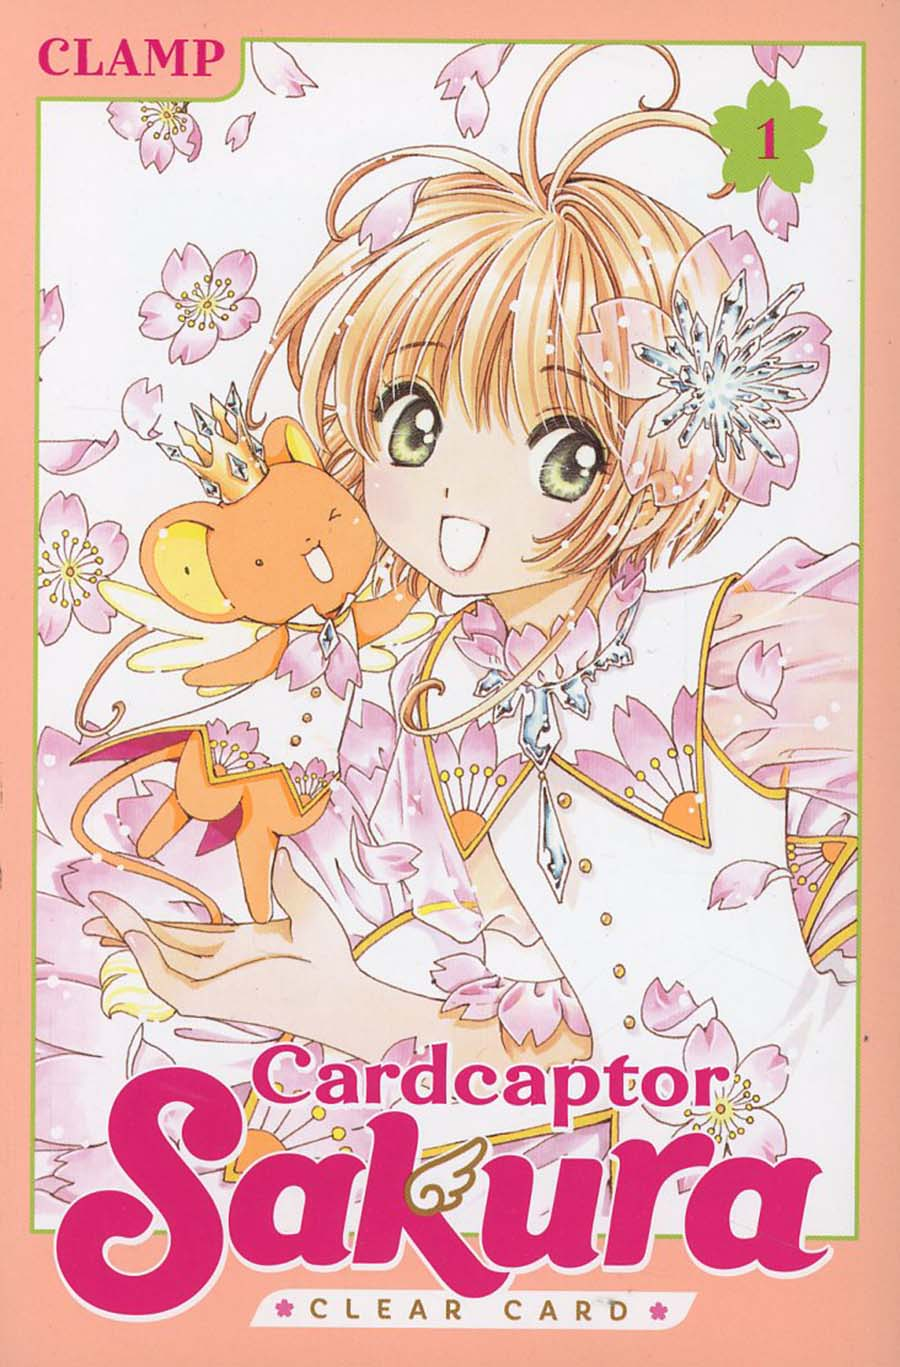 Cardcaptor Sakura Clear Card Vol 1 GN